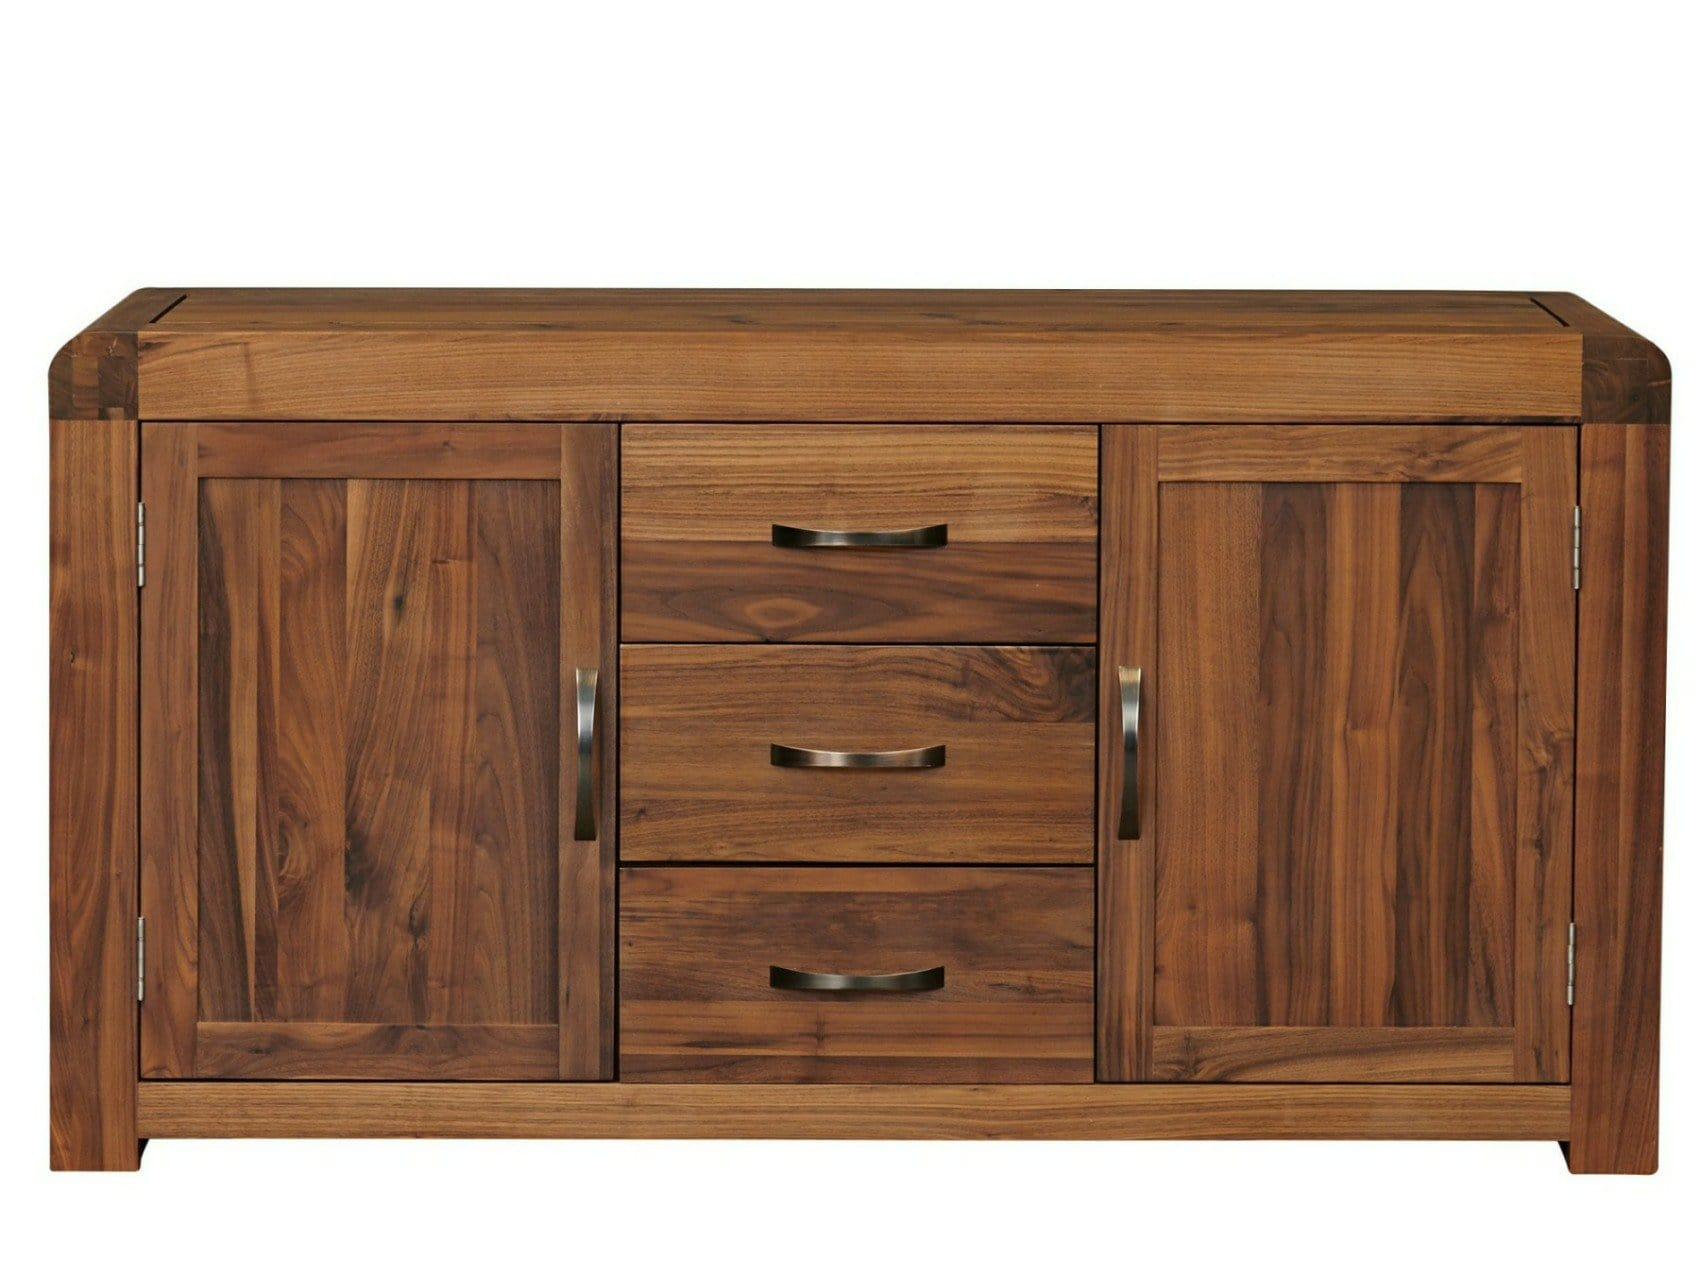 Large solid walnut sideboard with two cupboards and three medium-size drawers